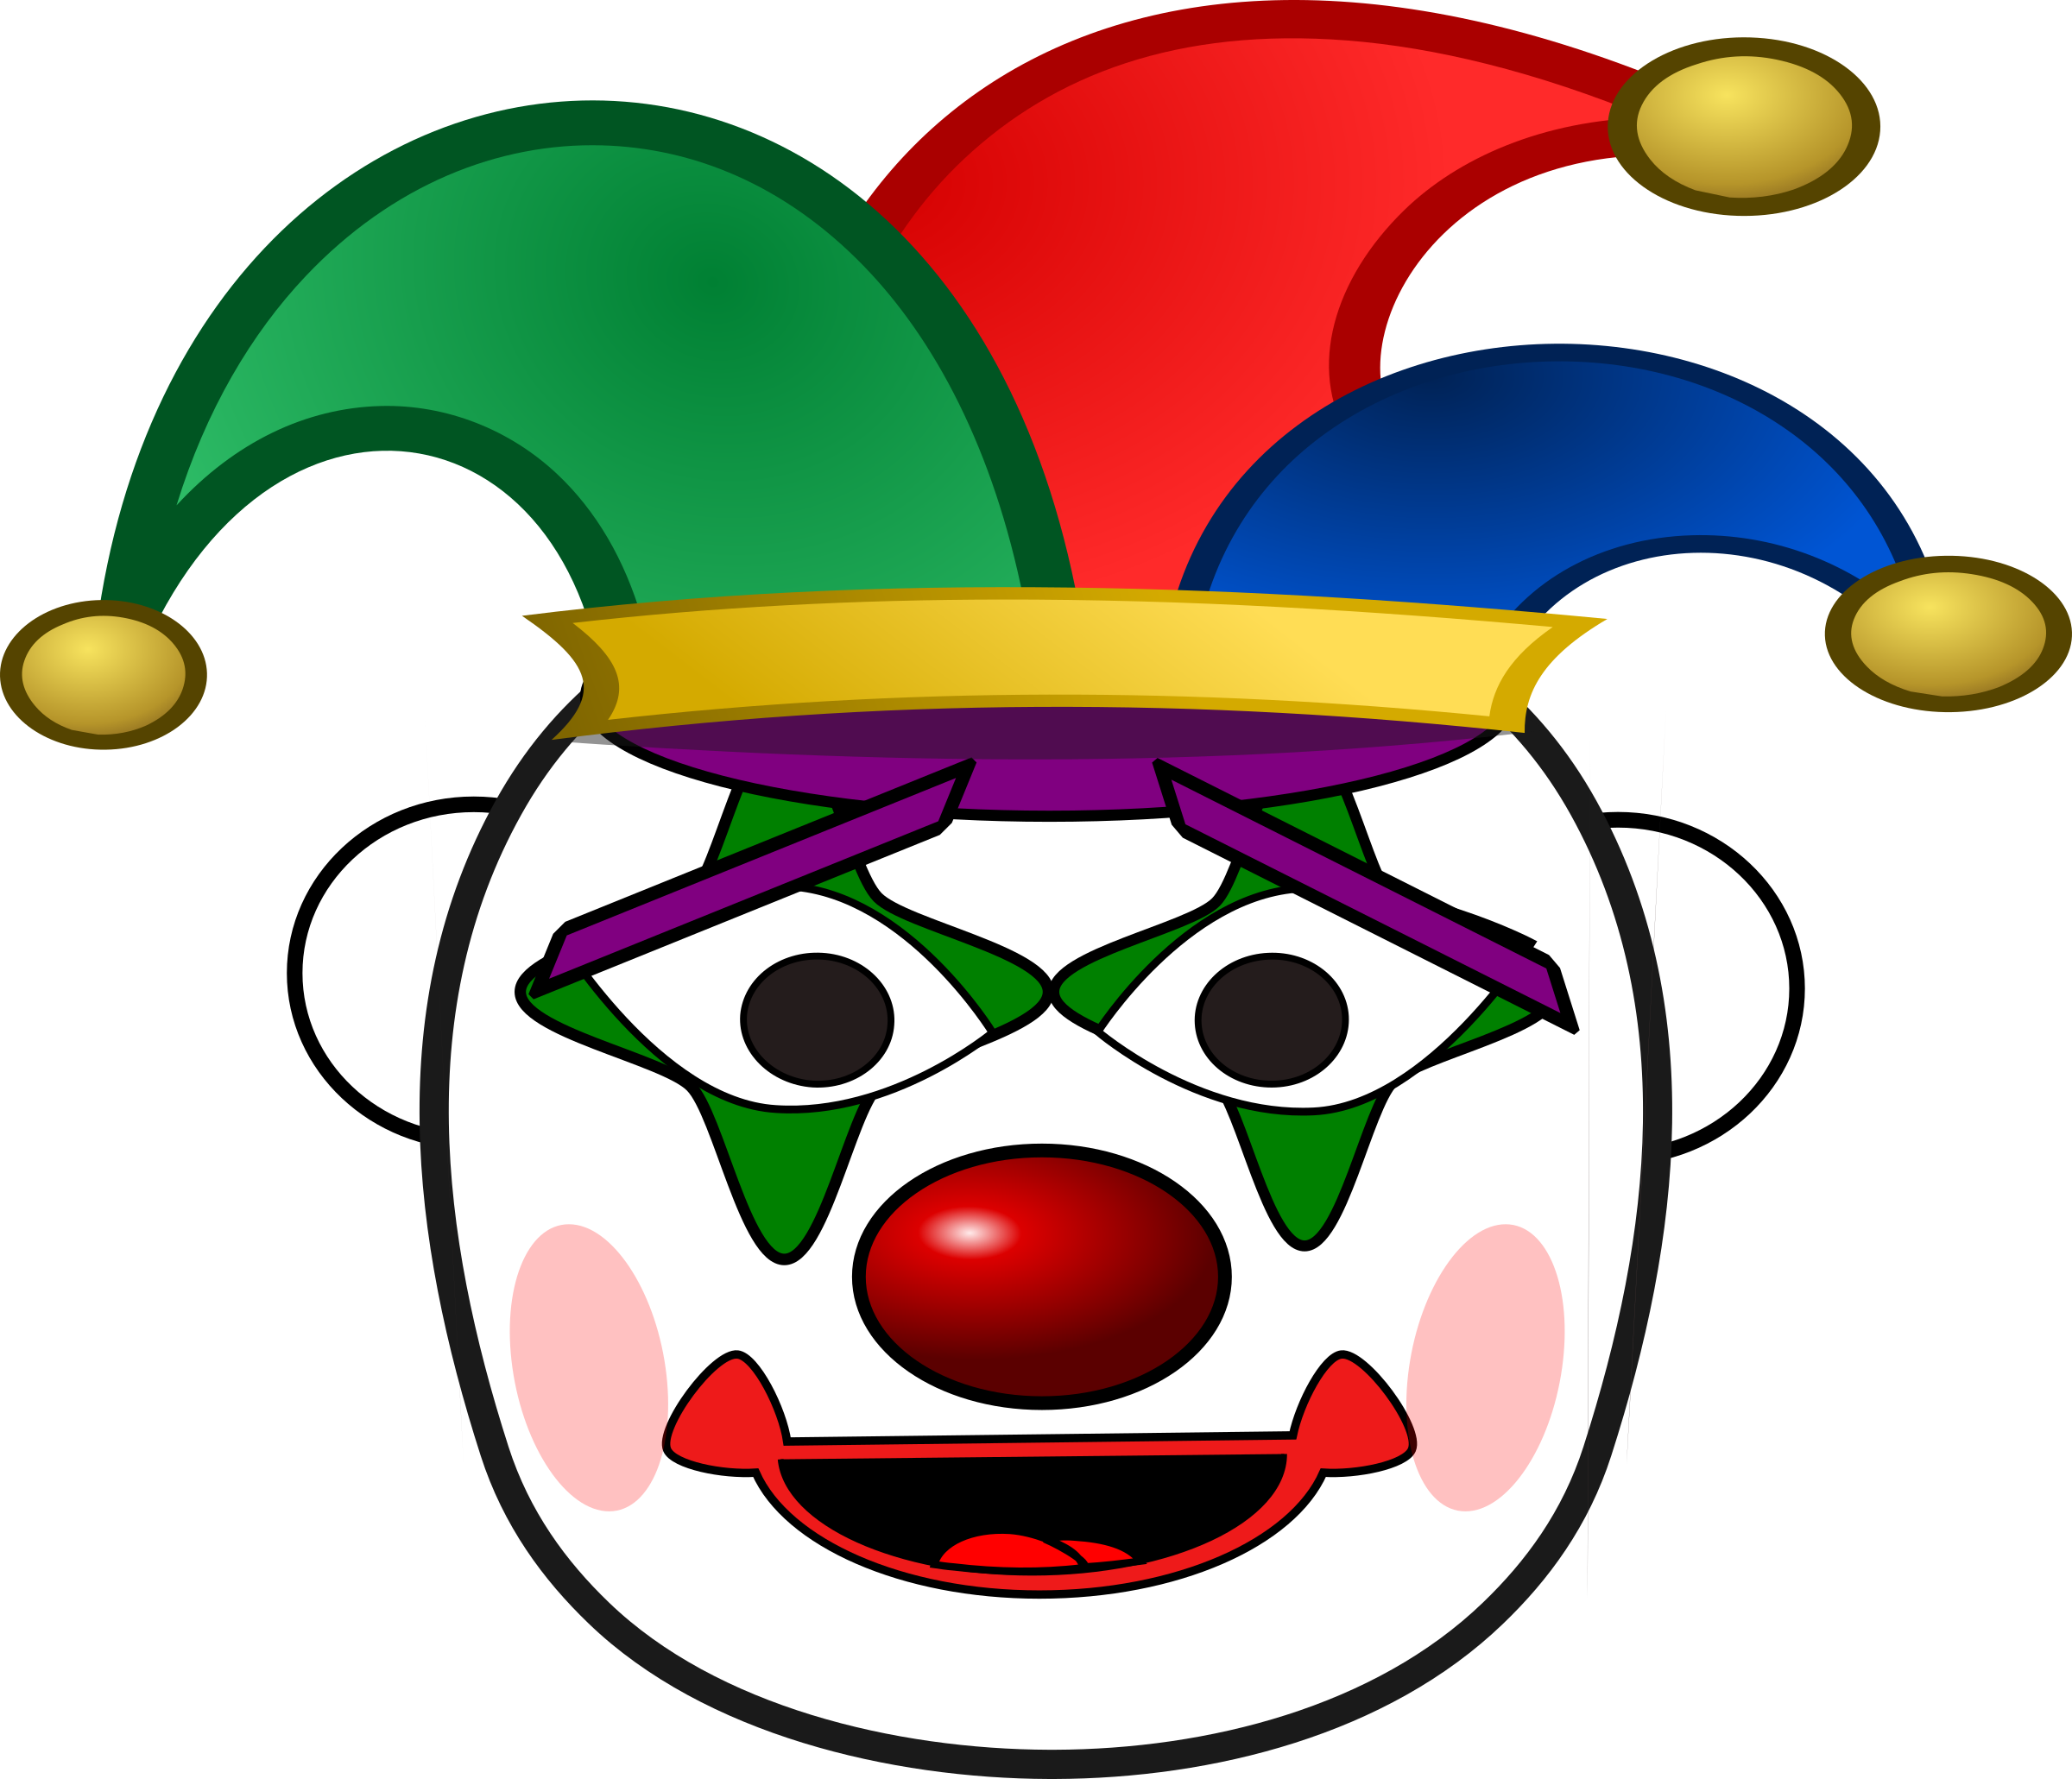 Pennywise the clown drawing png vector. Happy clipart at getdrawings